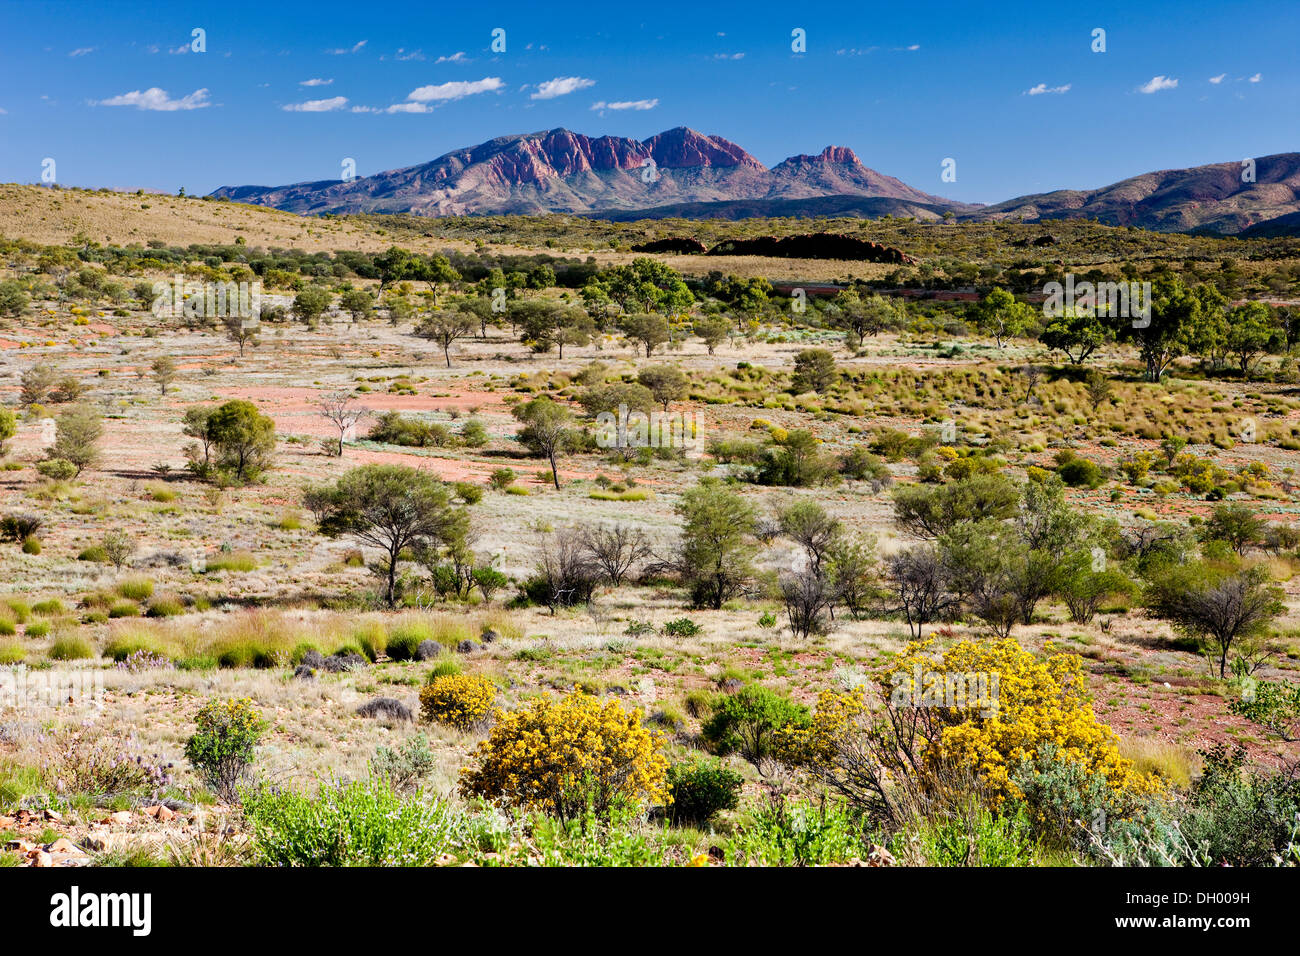 Mt. Sonder, West MacDonnell National Park, Northern Territory, Australia Stock Photo